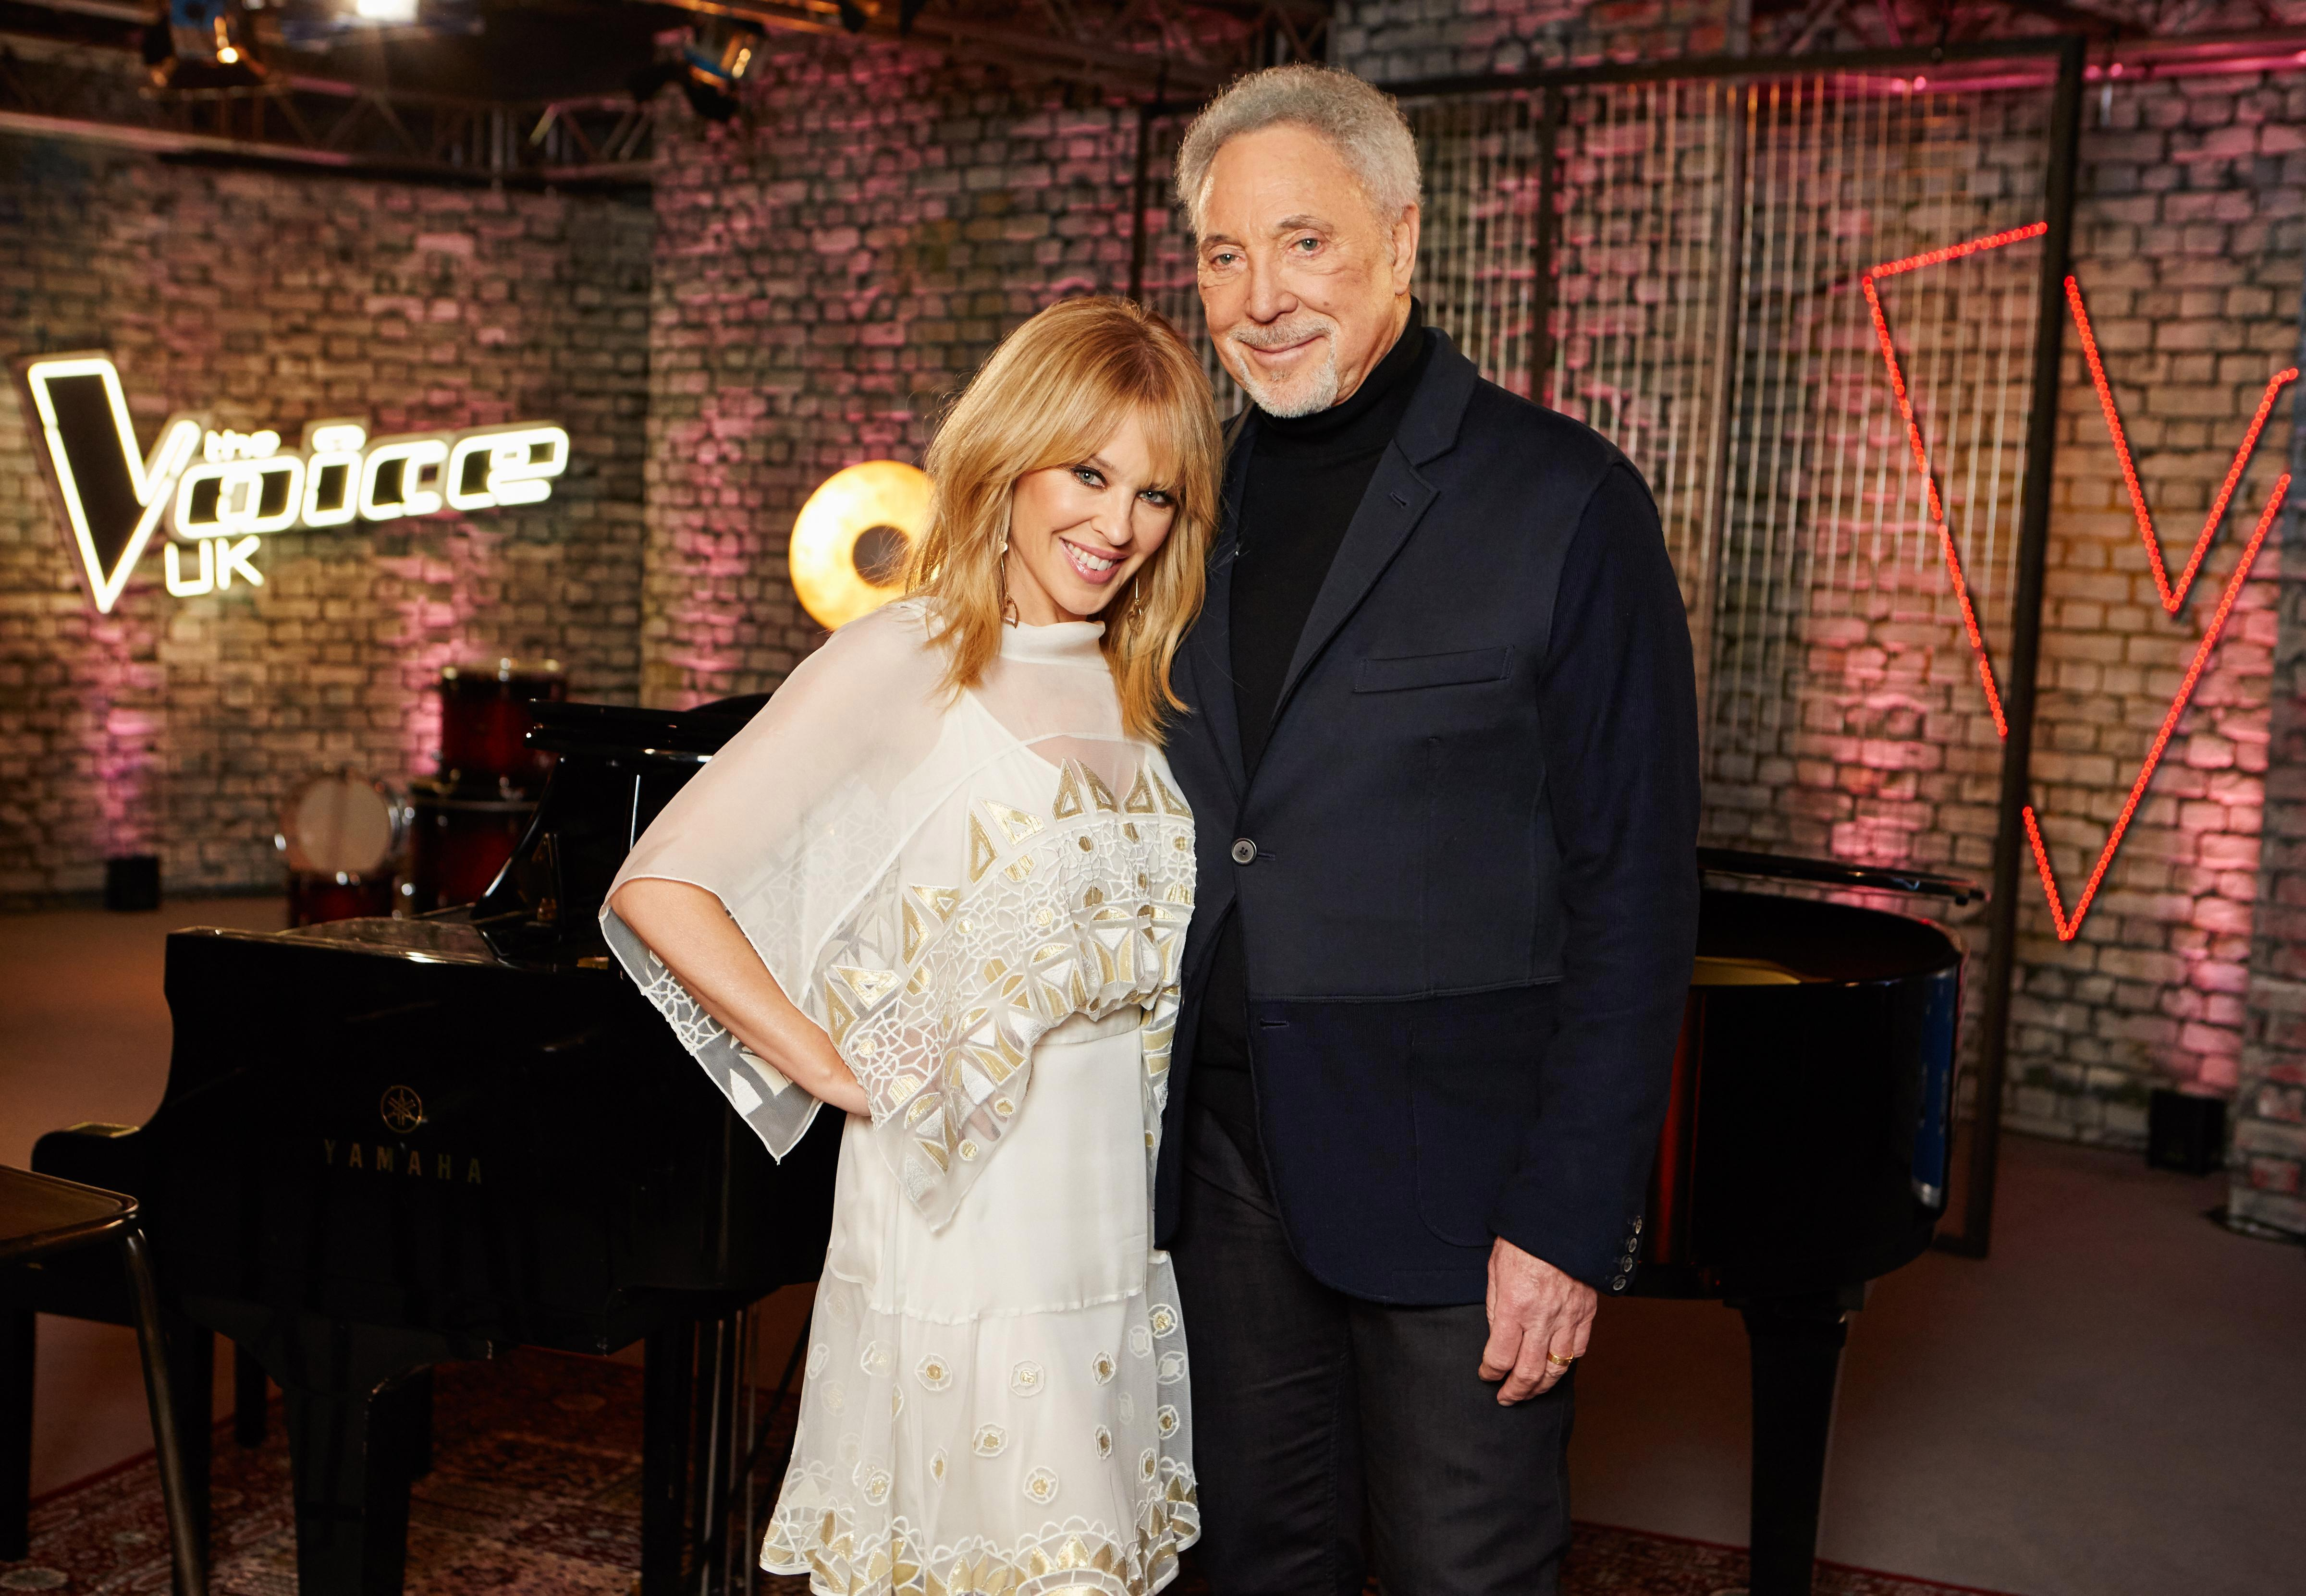 Kylie Minogue returns to The Voice for the first time in four years to help mentor Sir Tom Jones' team